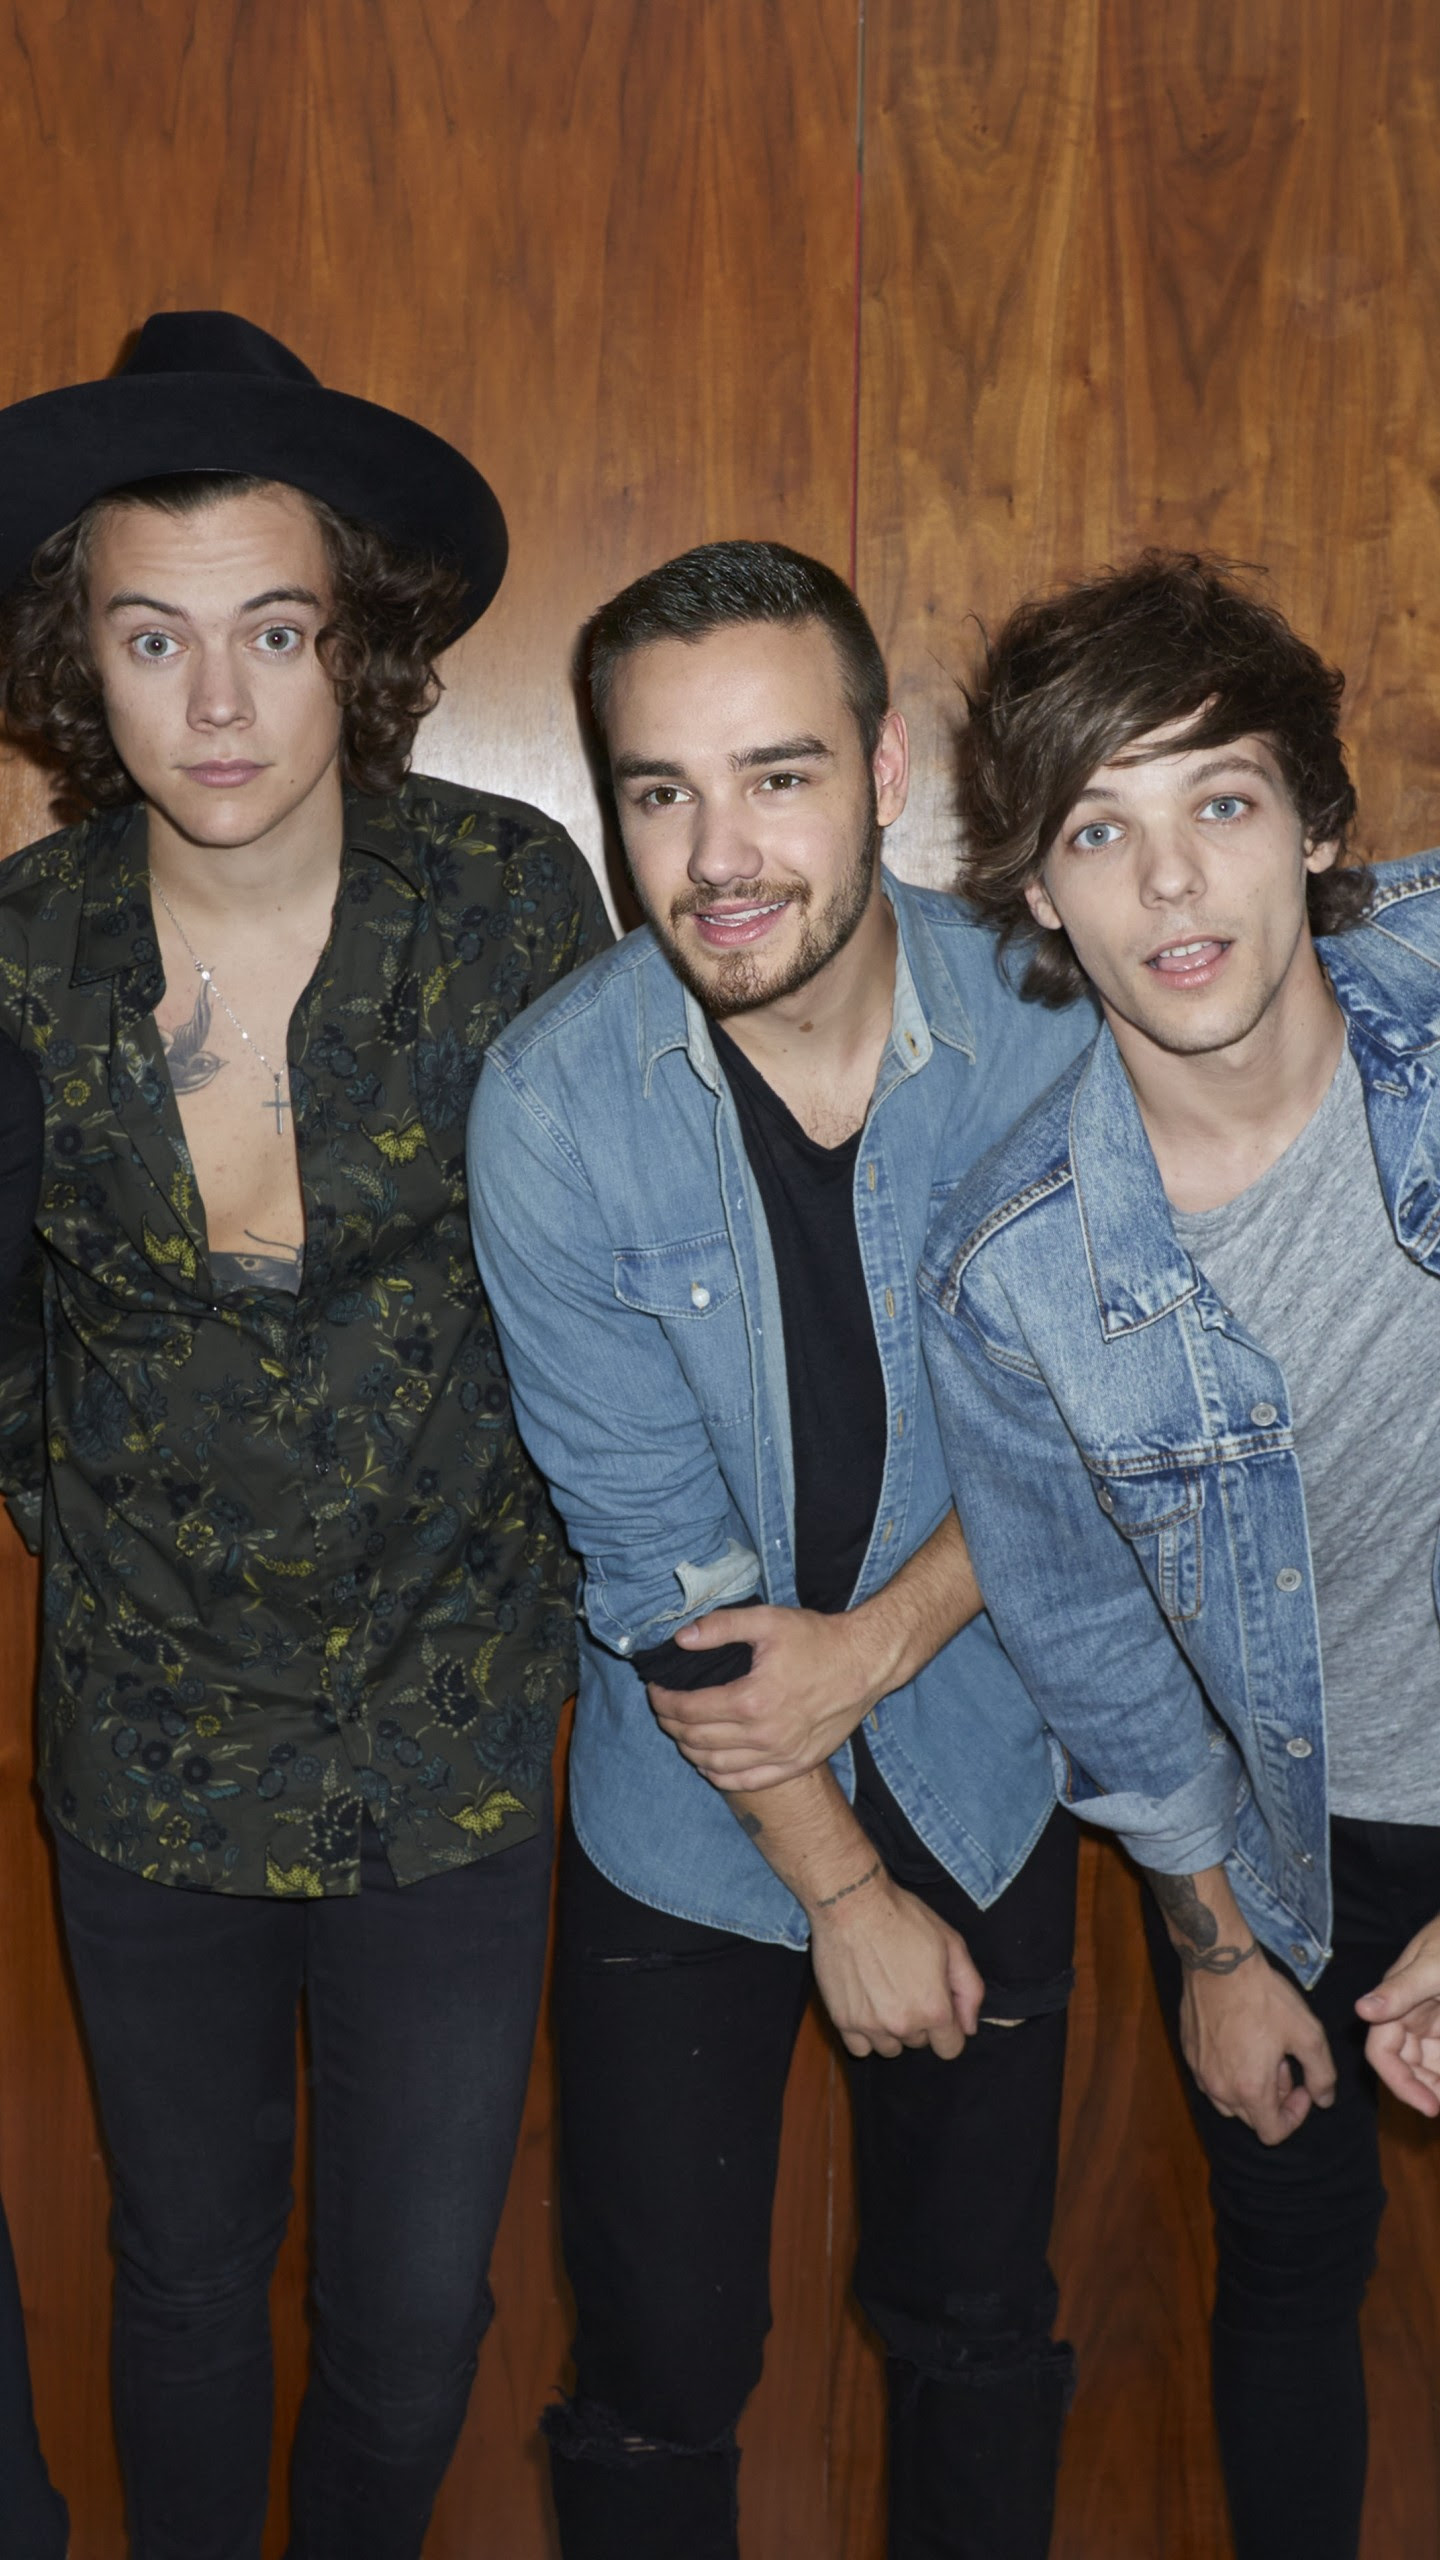 One Direction Wallpaper For Phone 75 Images